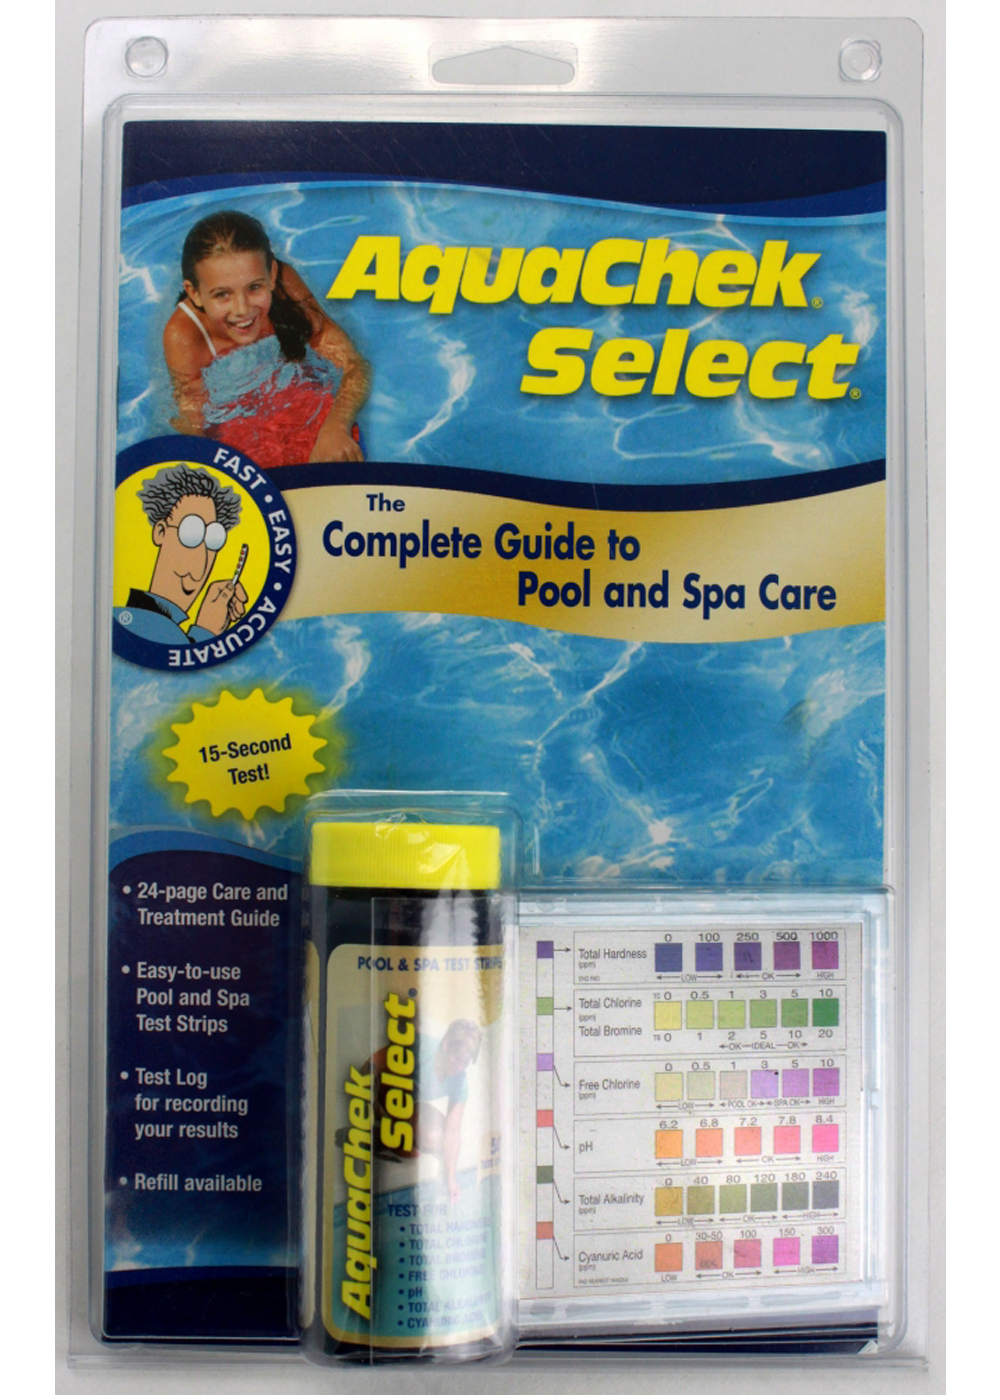 Aquachek 541604a select 7 in 1 swimming pool and spa test strips complete kit ebay for How to read swimming pool test strips